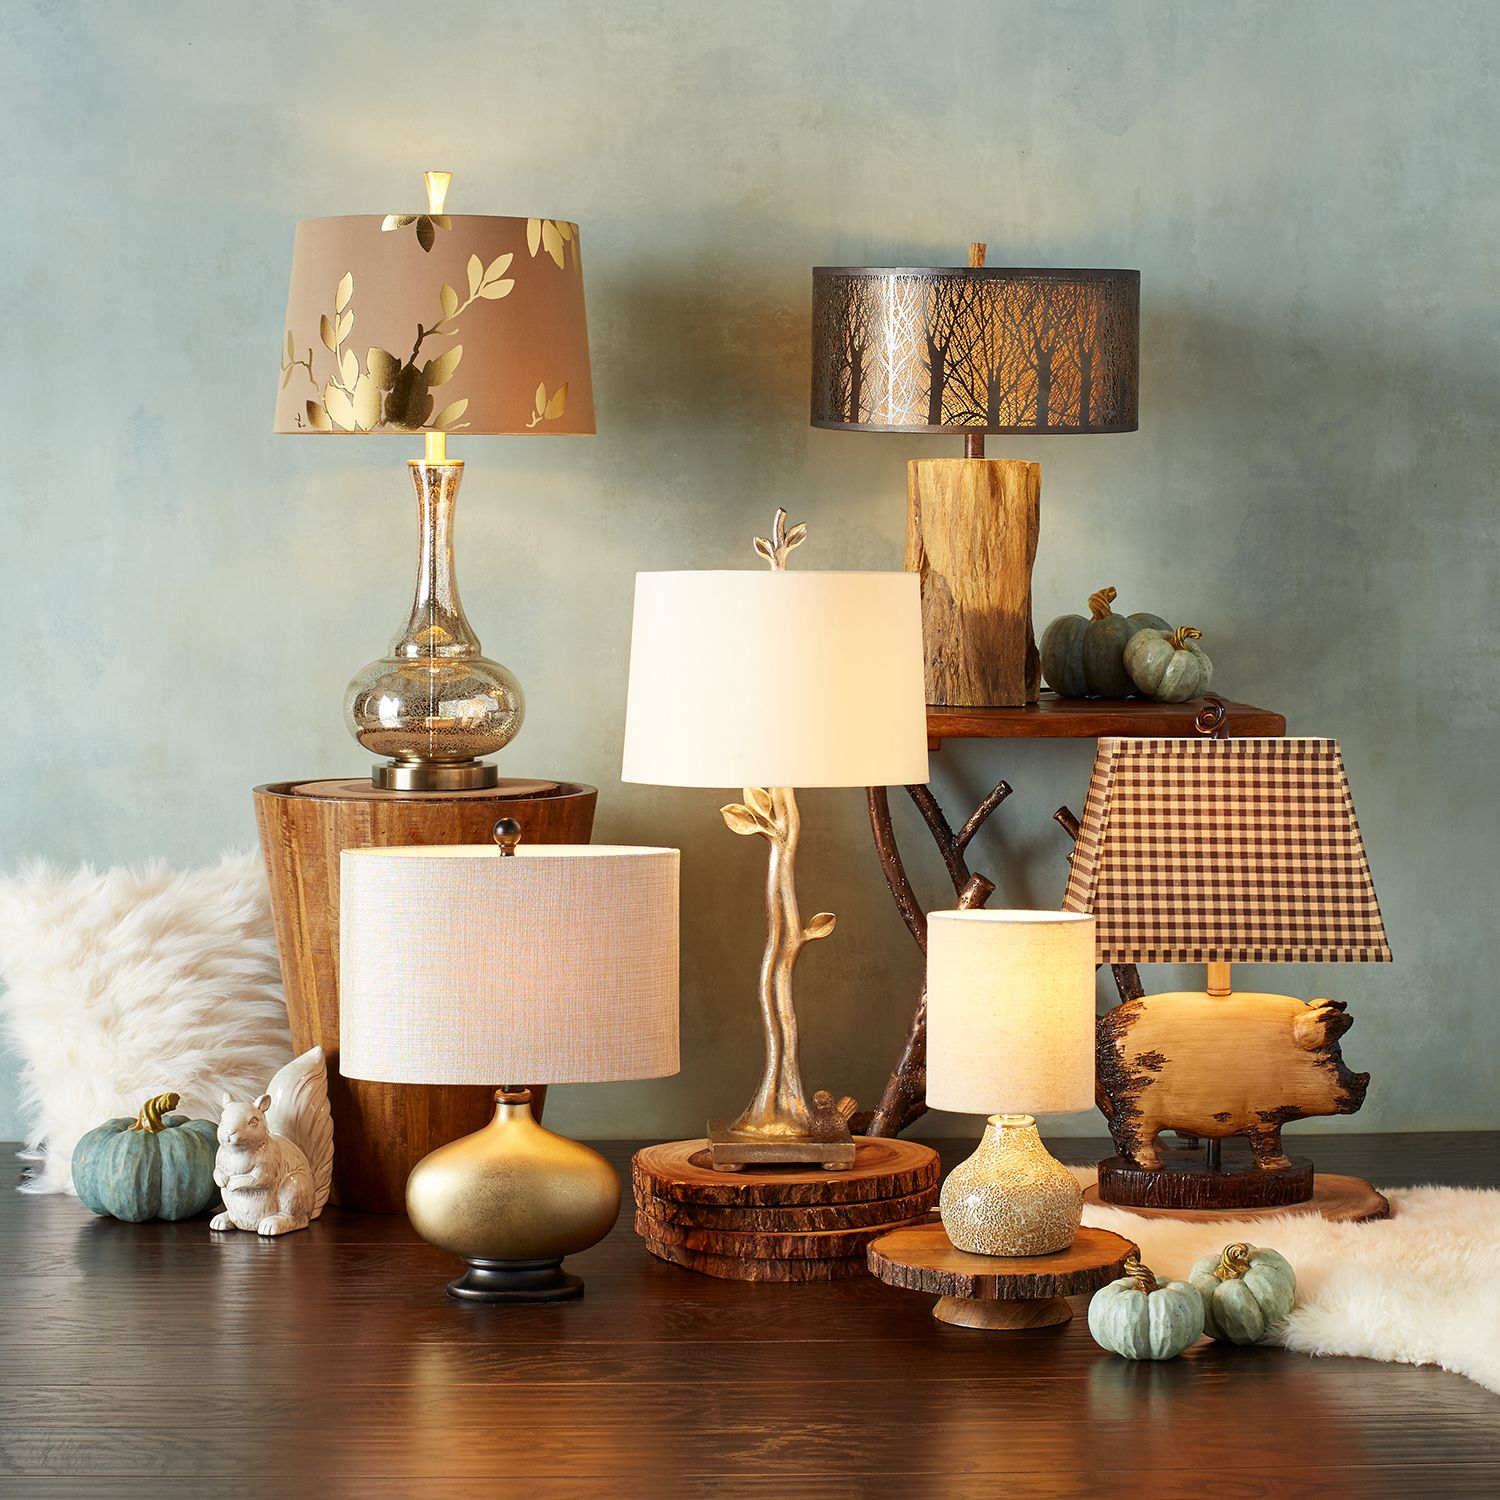 gilded table lamp pier imports one accent lamps silver metal console dale tiffany dragonfly antique stand round glass and wood coffee cool retro furniture patio dining clearance